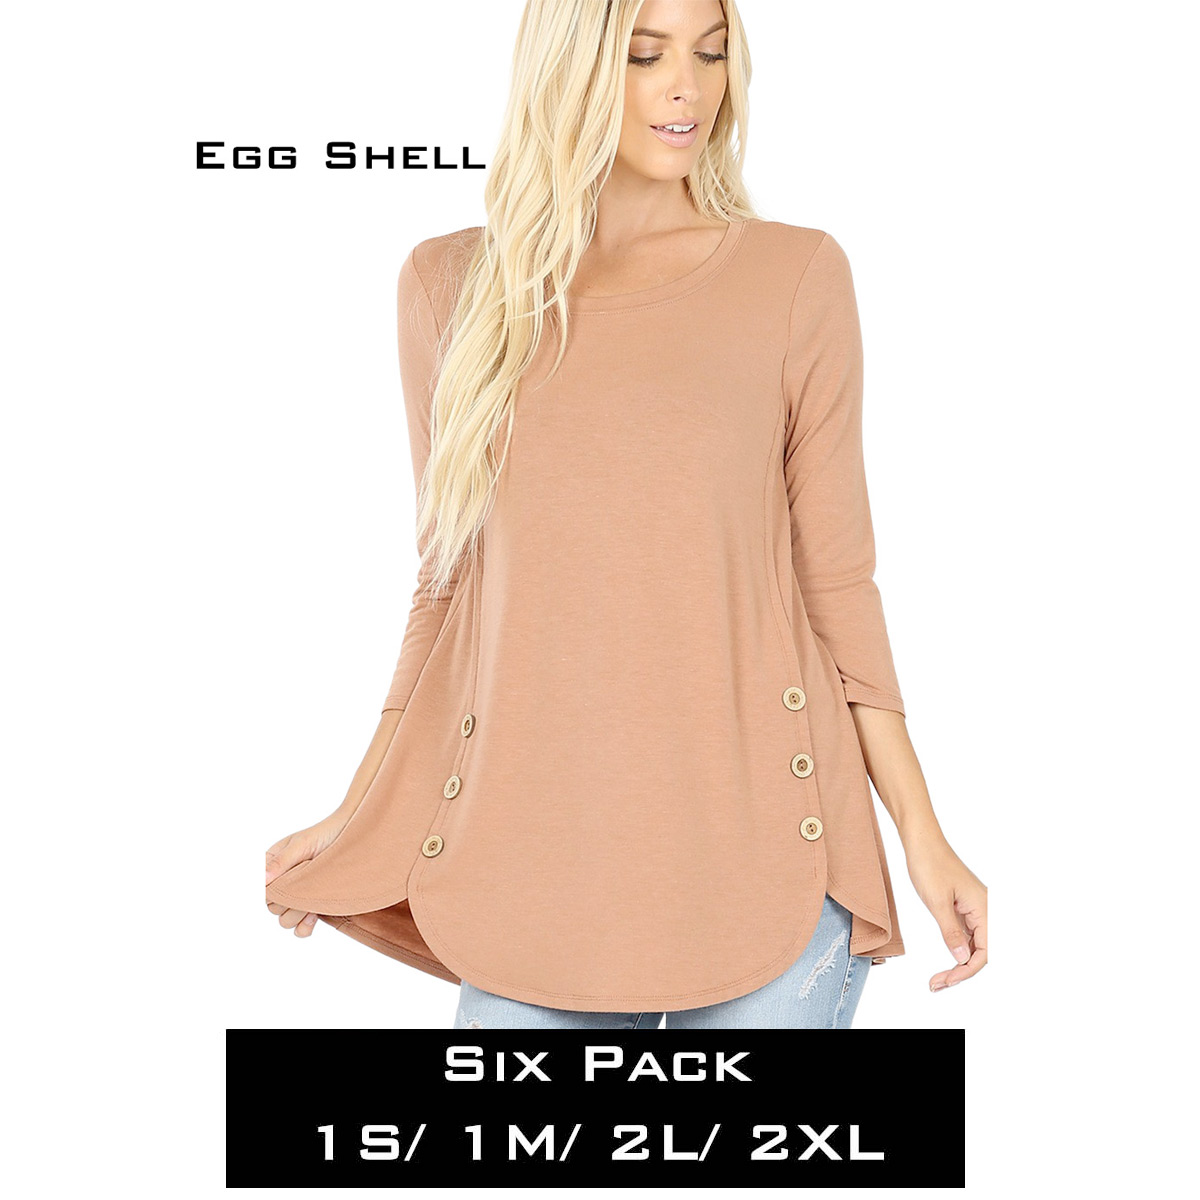 EGG SHELL (SIX PACK) 3/4 Sleeve Side Wood Buttons Top 2032(1S,1M,2L,2XL)